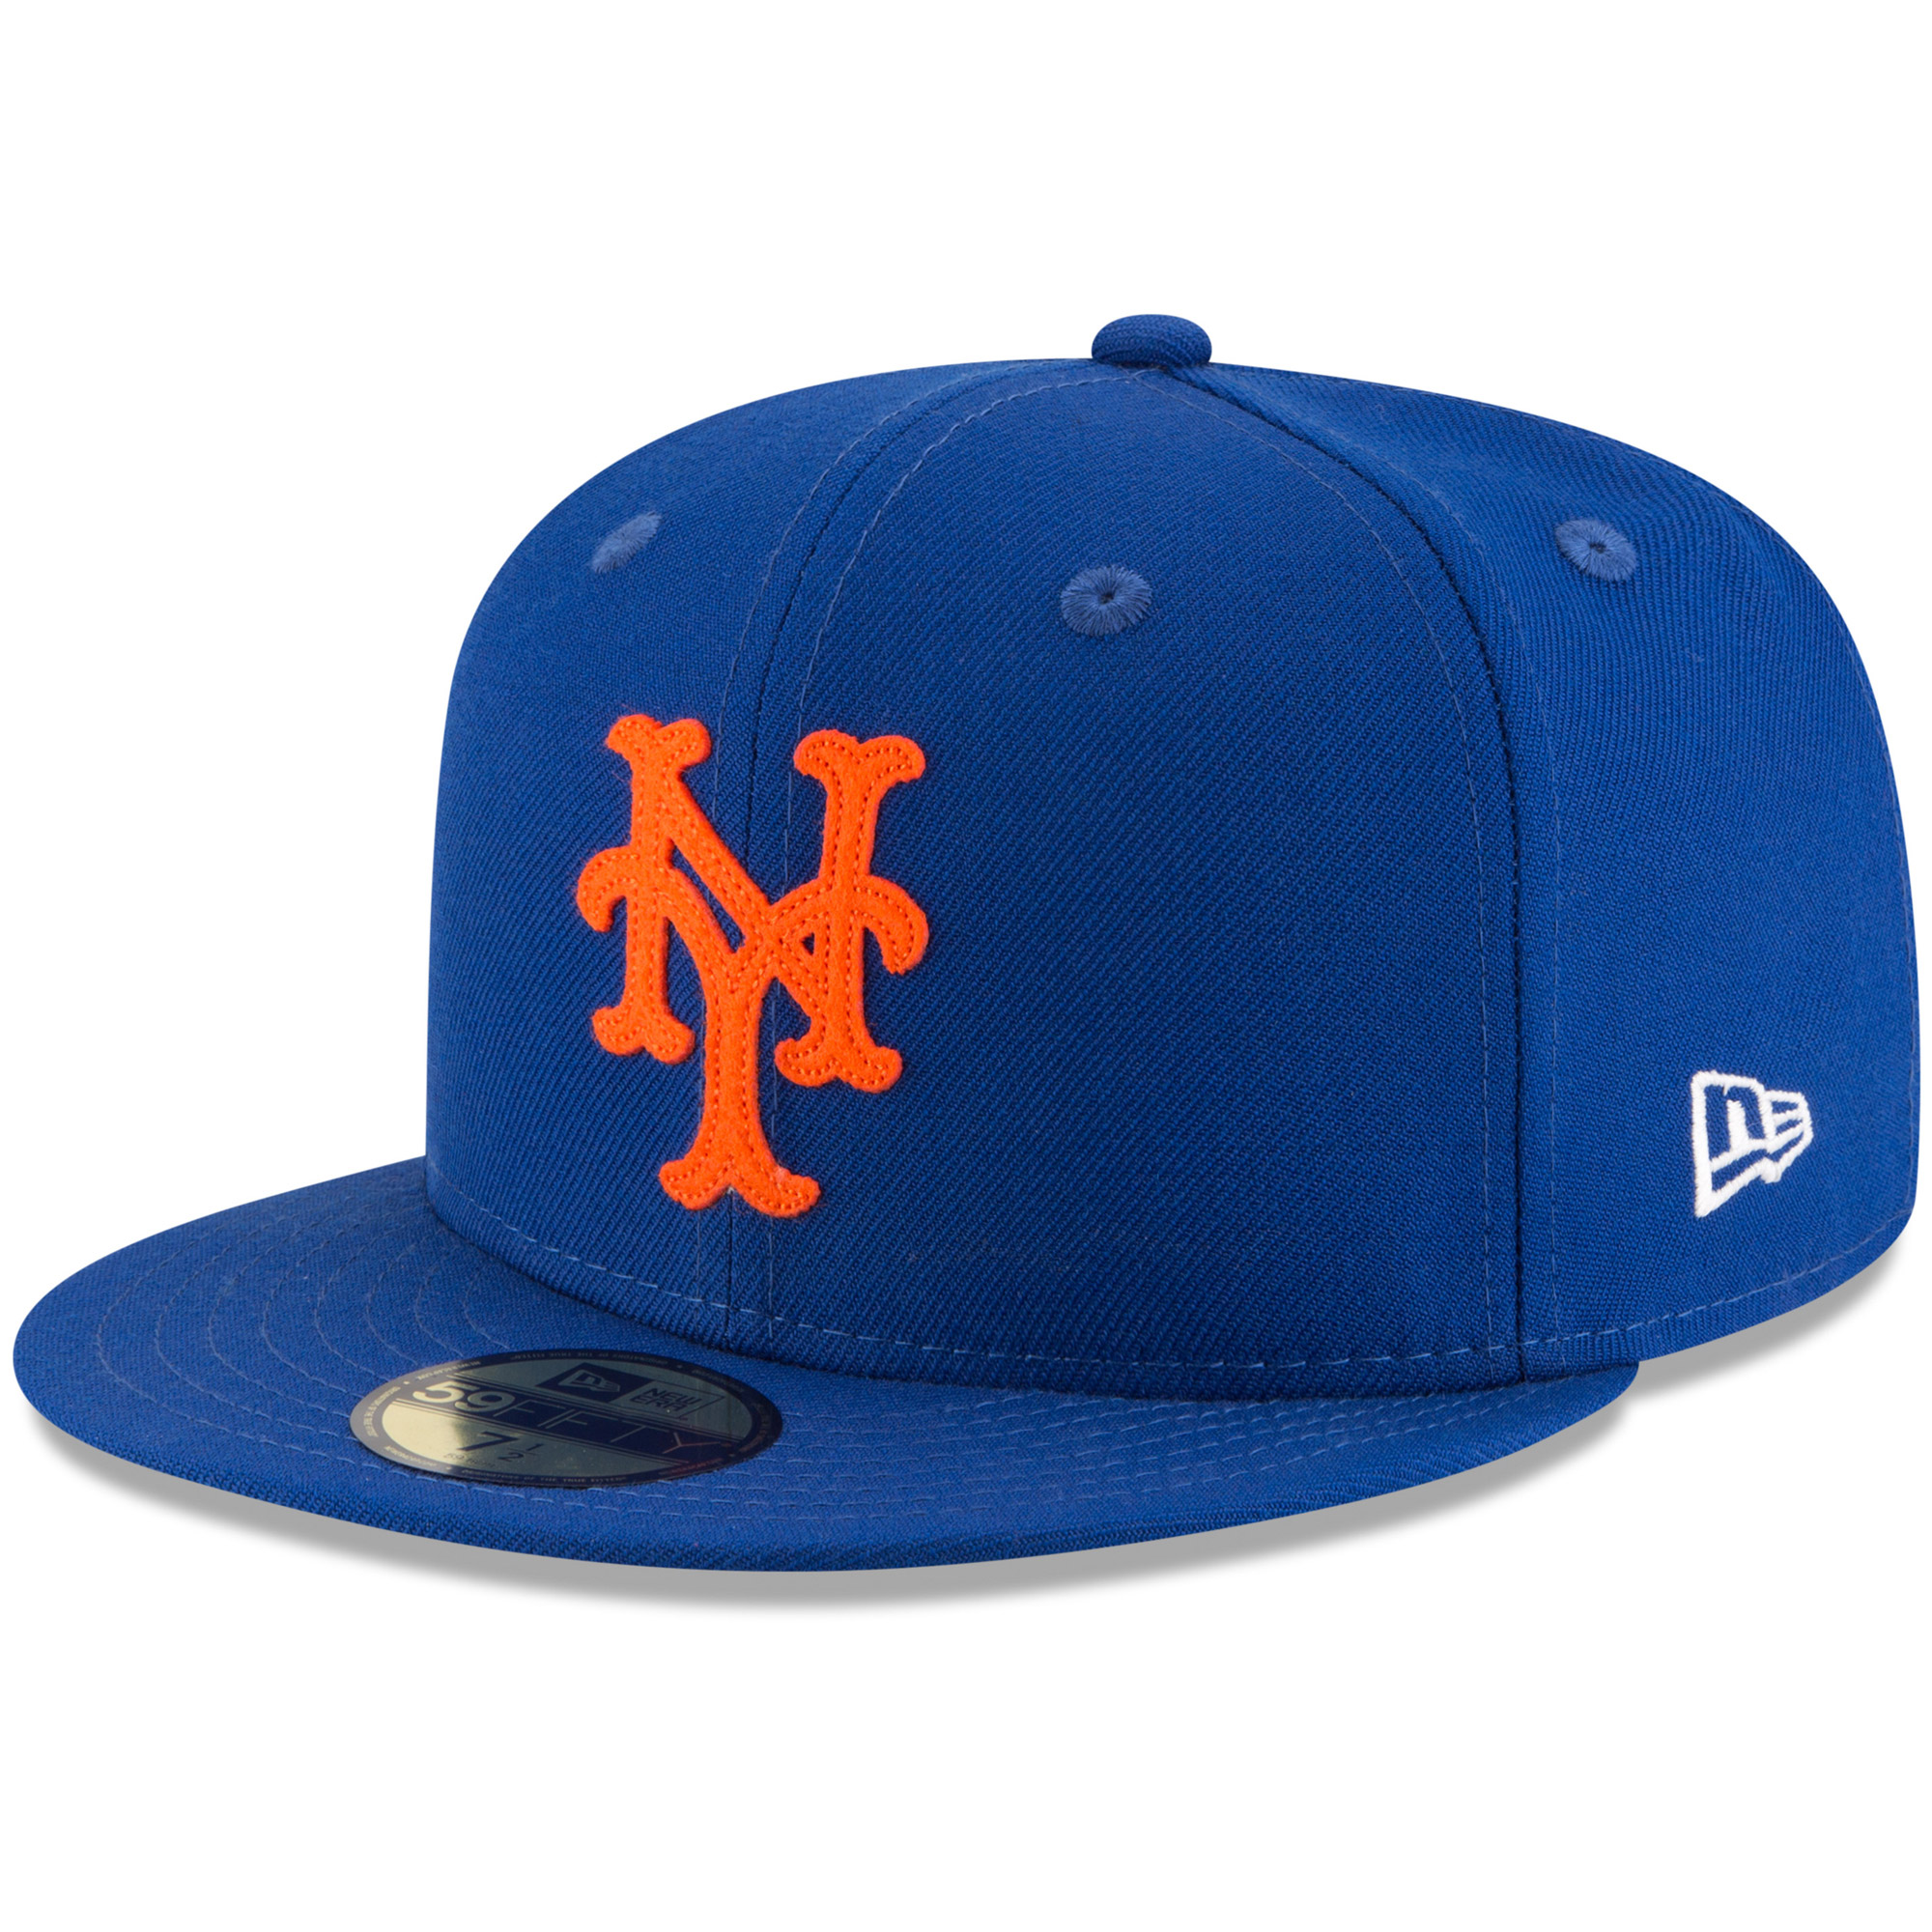 New York Mets New Era Cooperstown Inaugural Season 59FIFTY Fitted Hat - Royal